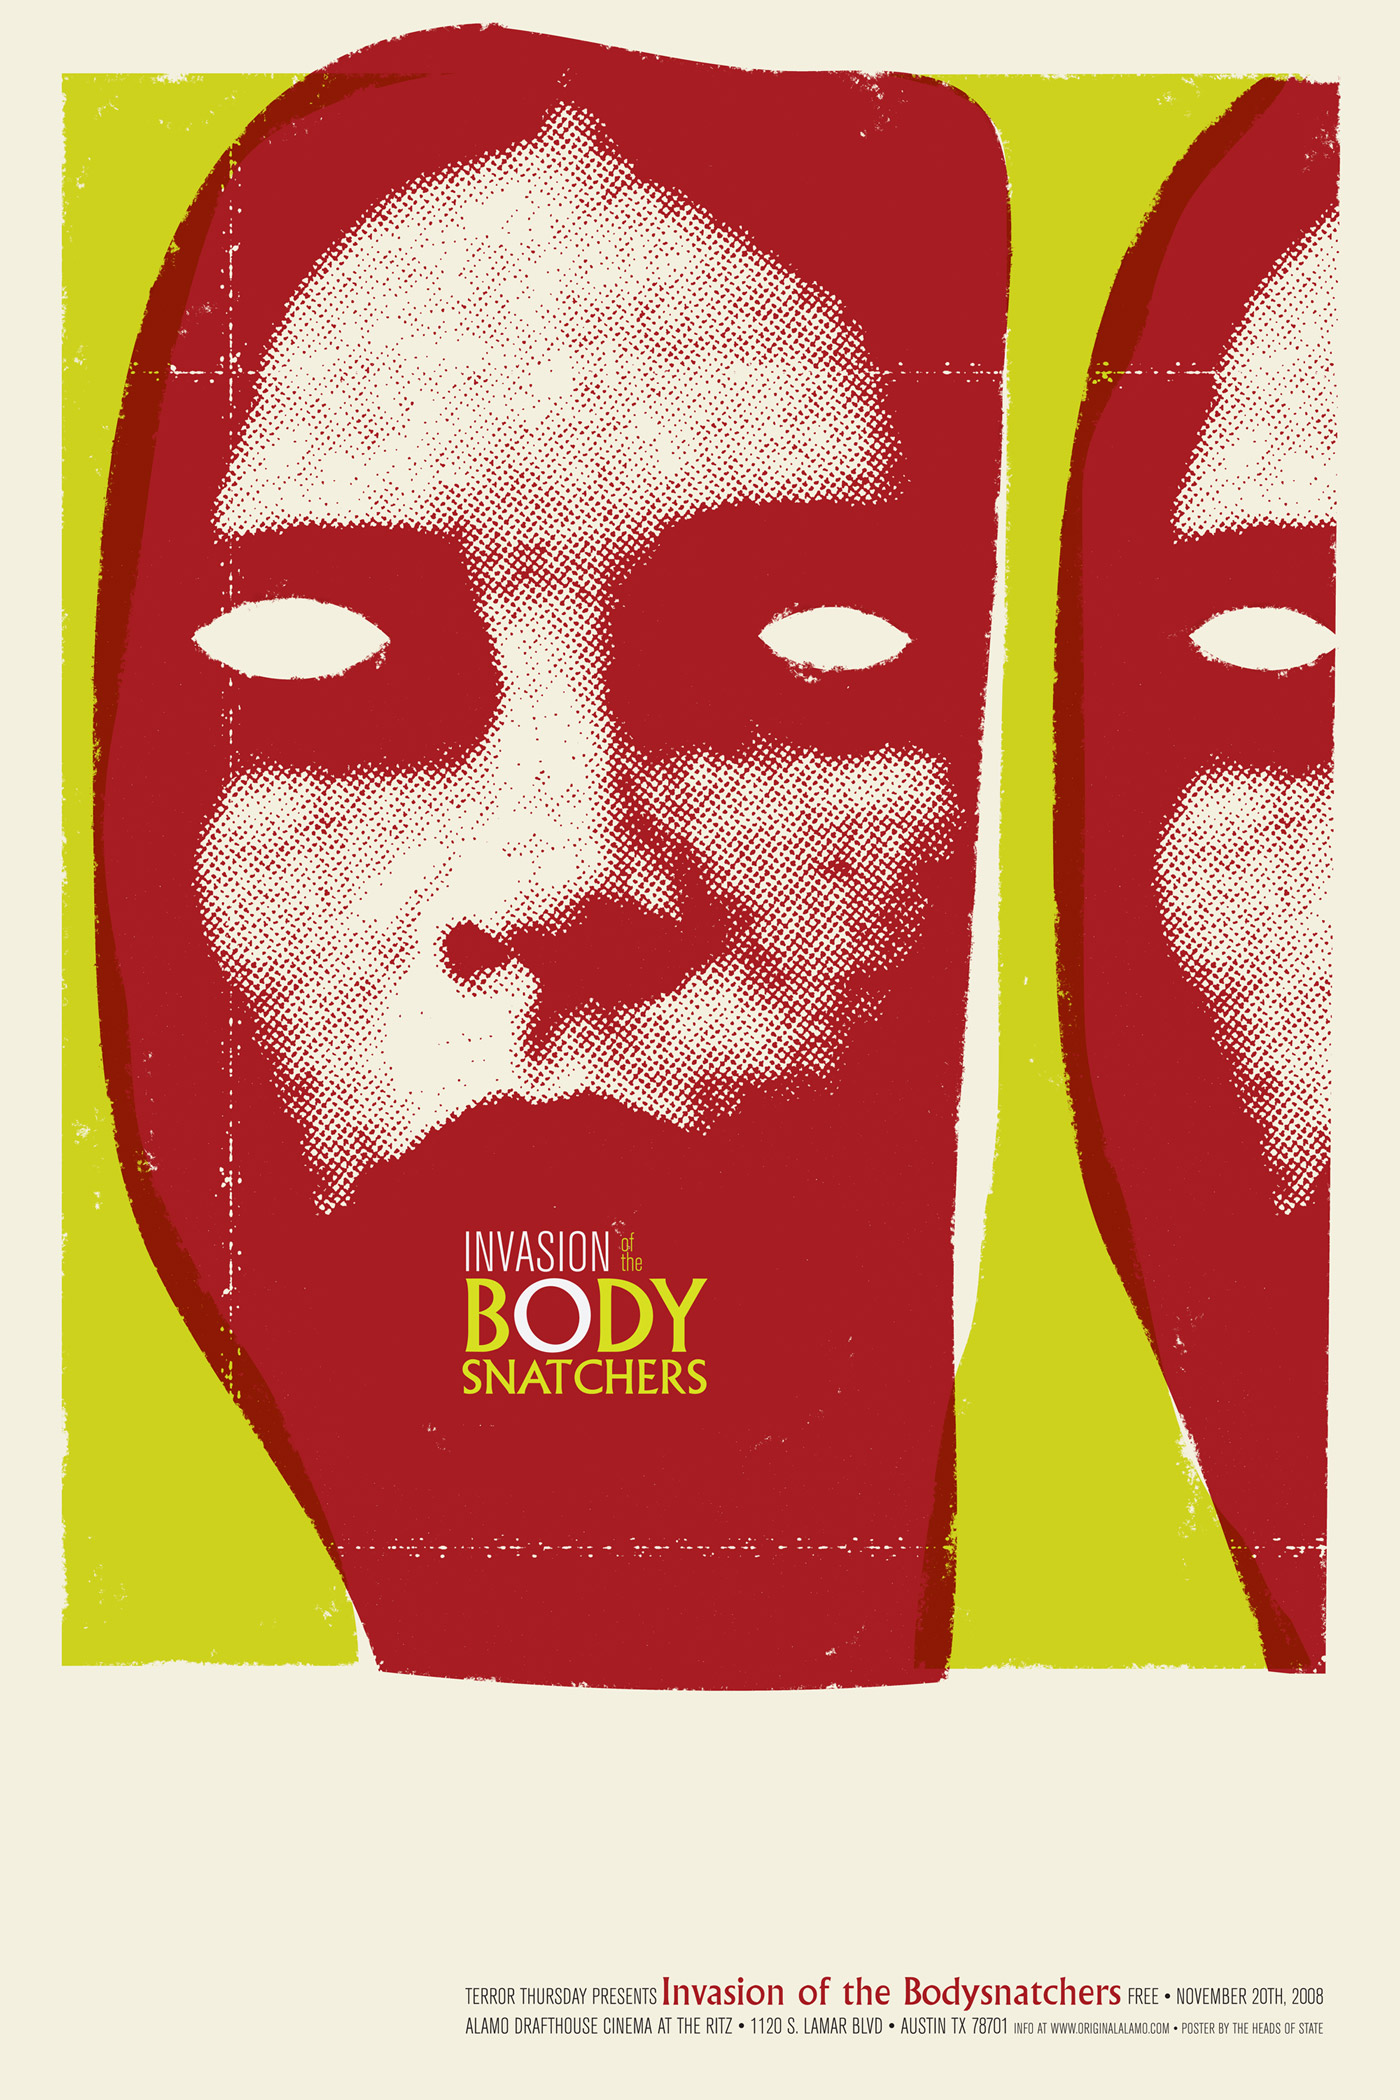 Invasion of the Body Snatchers Poster - The Heads of State